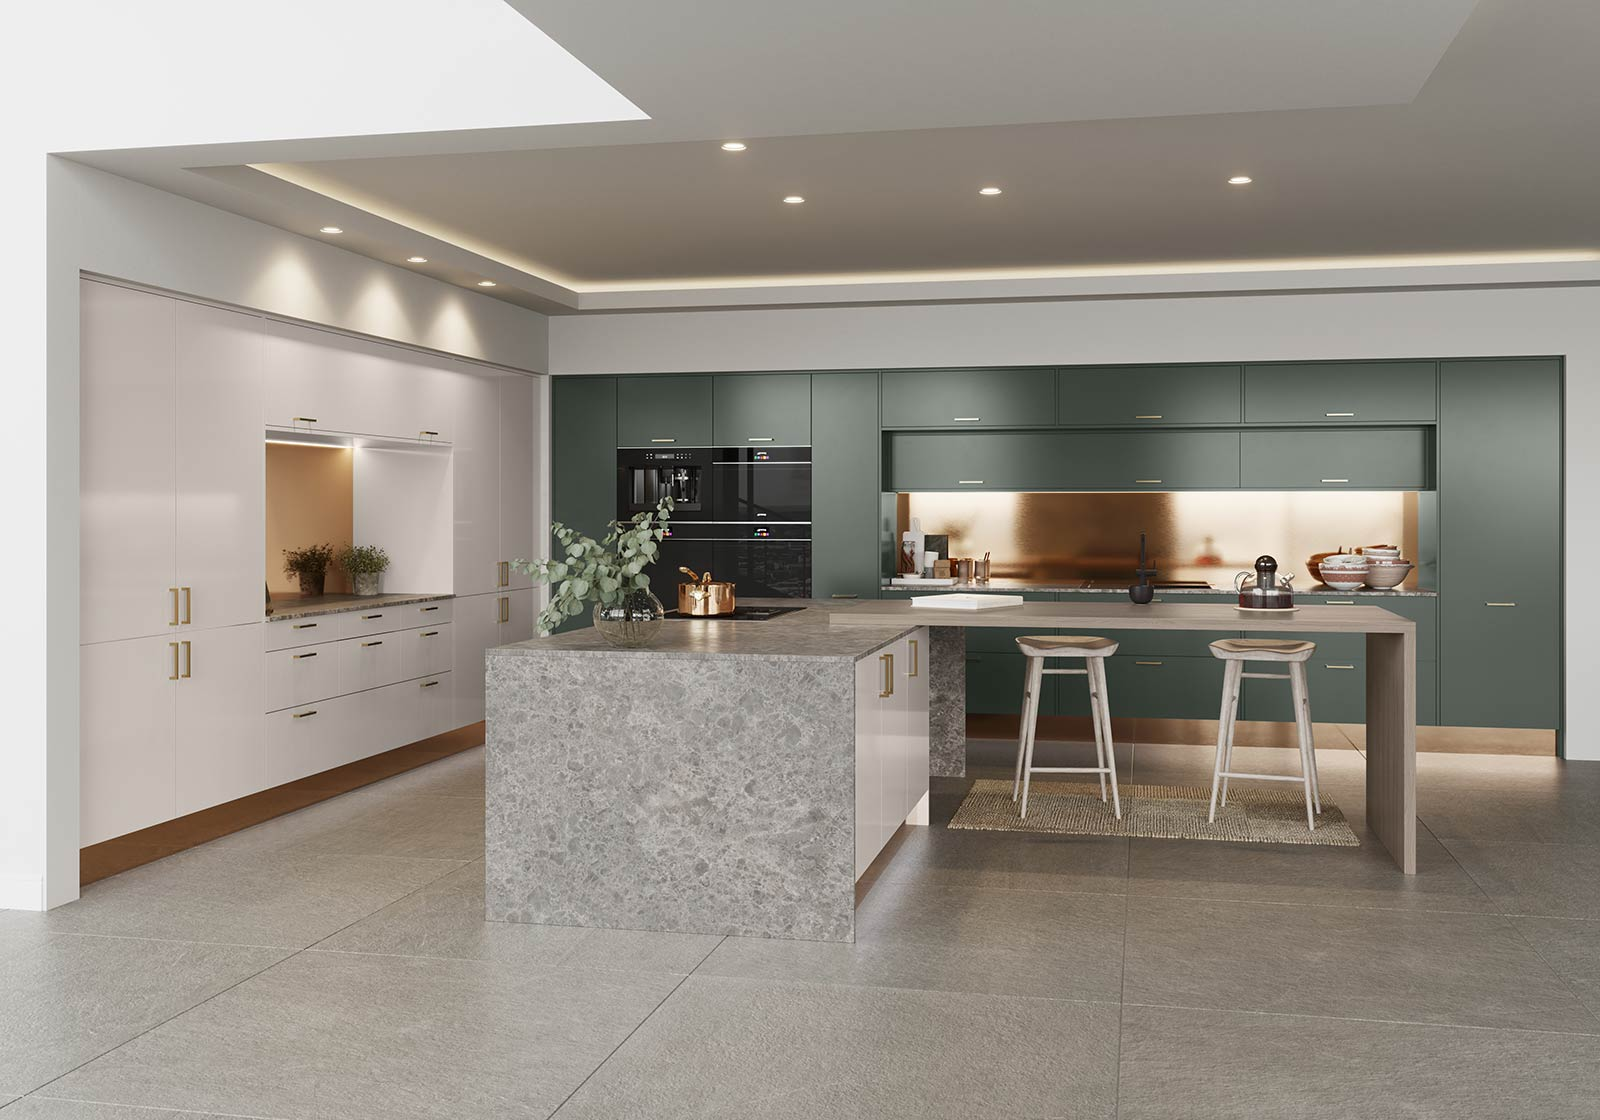 Green and copper kitchen by Masterclass Kitchens